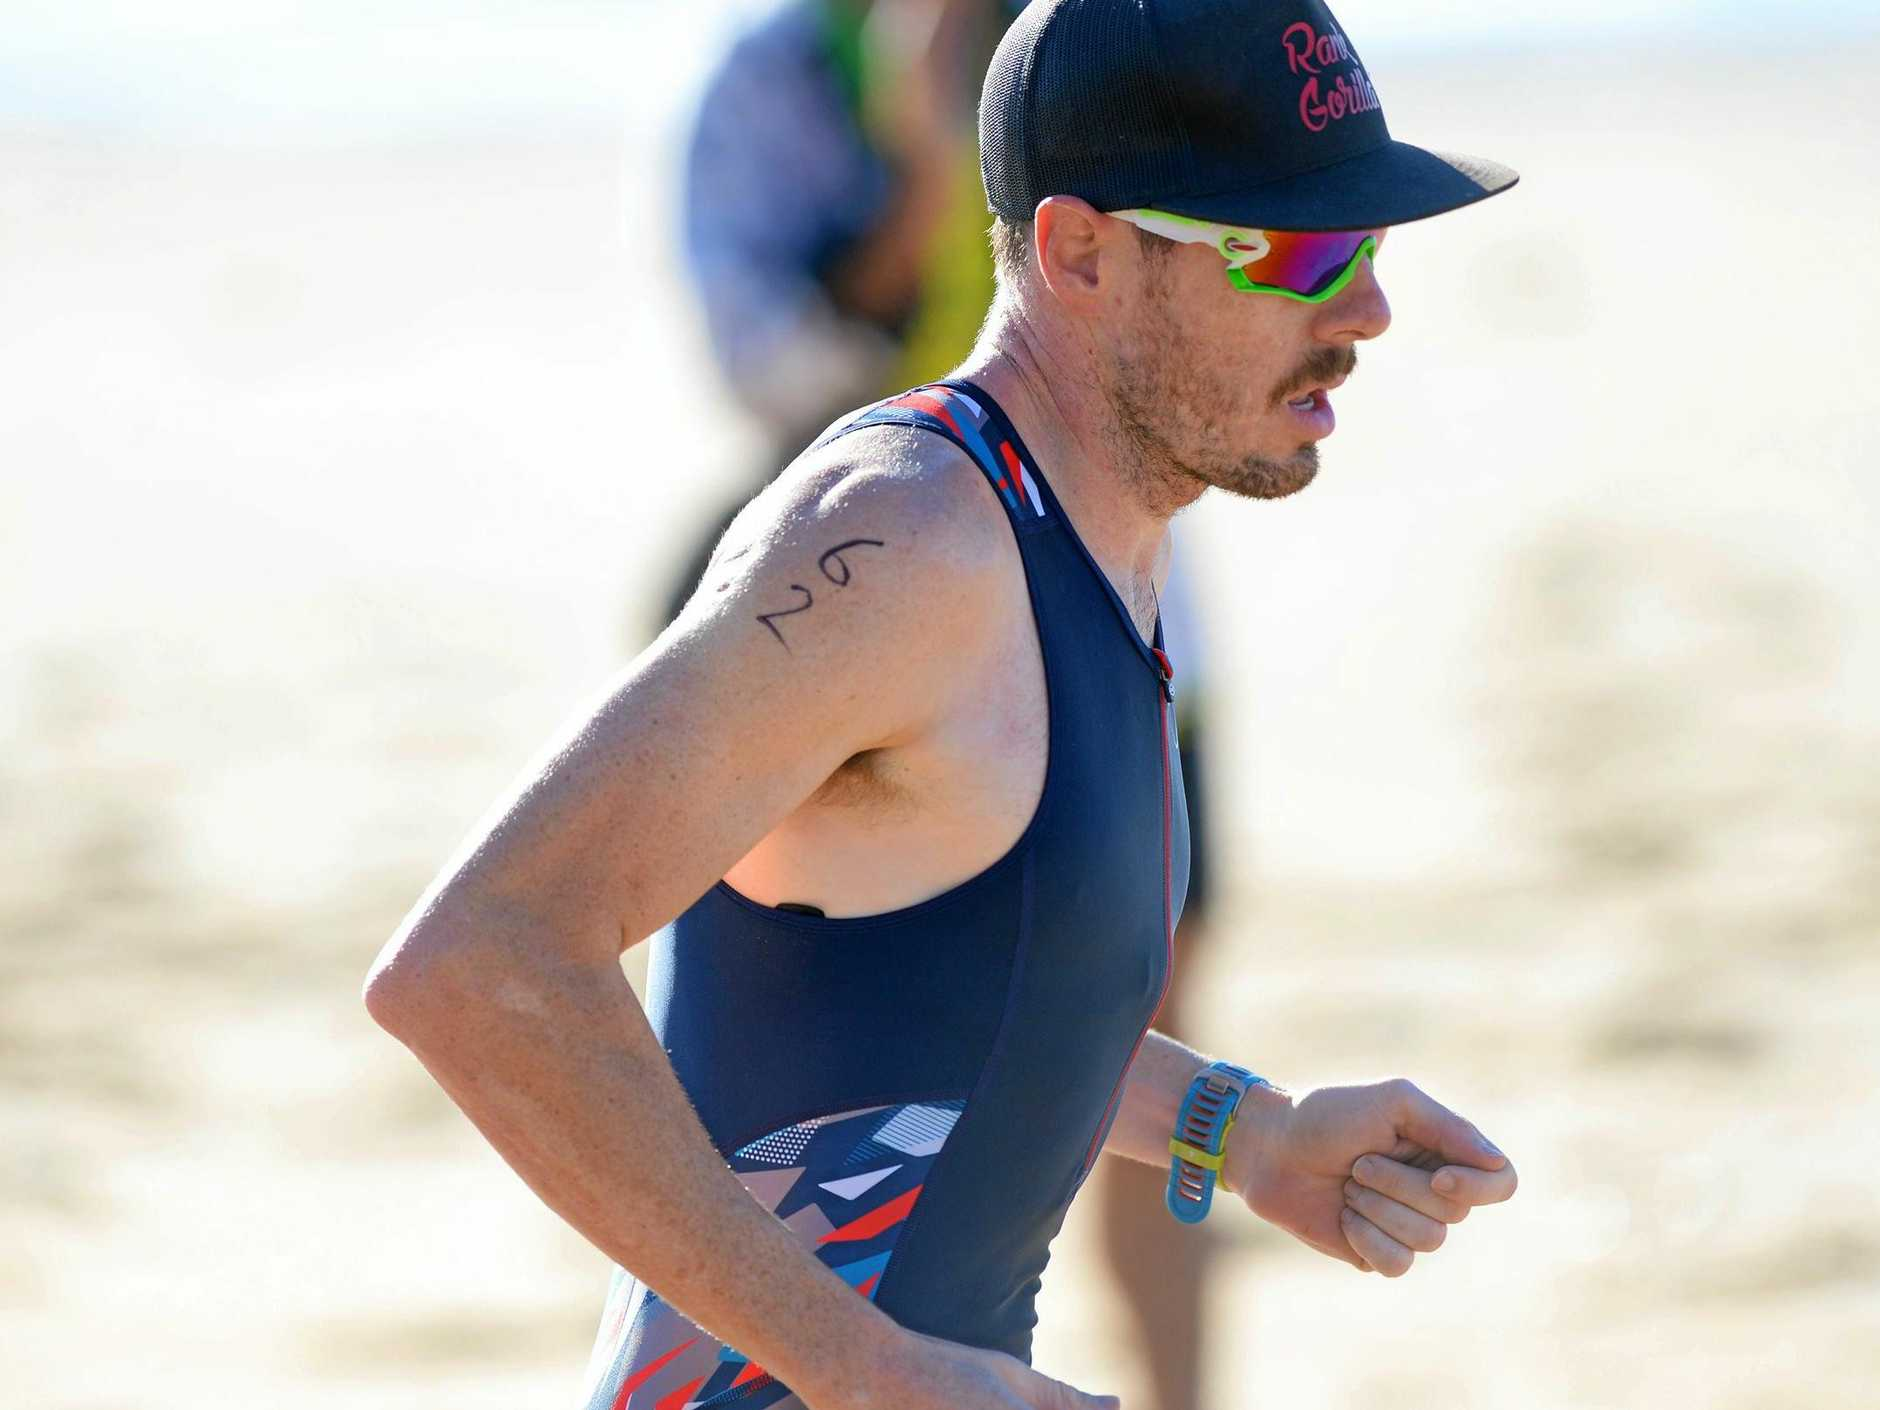 Rhys Jones competing in the Fitzroy Frogs Triathlon at Emu Park last year.